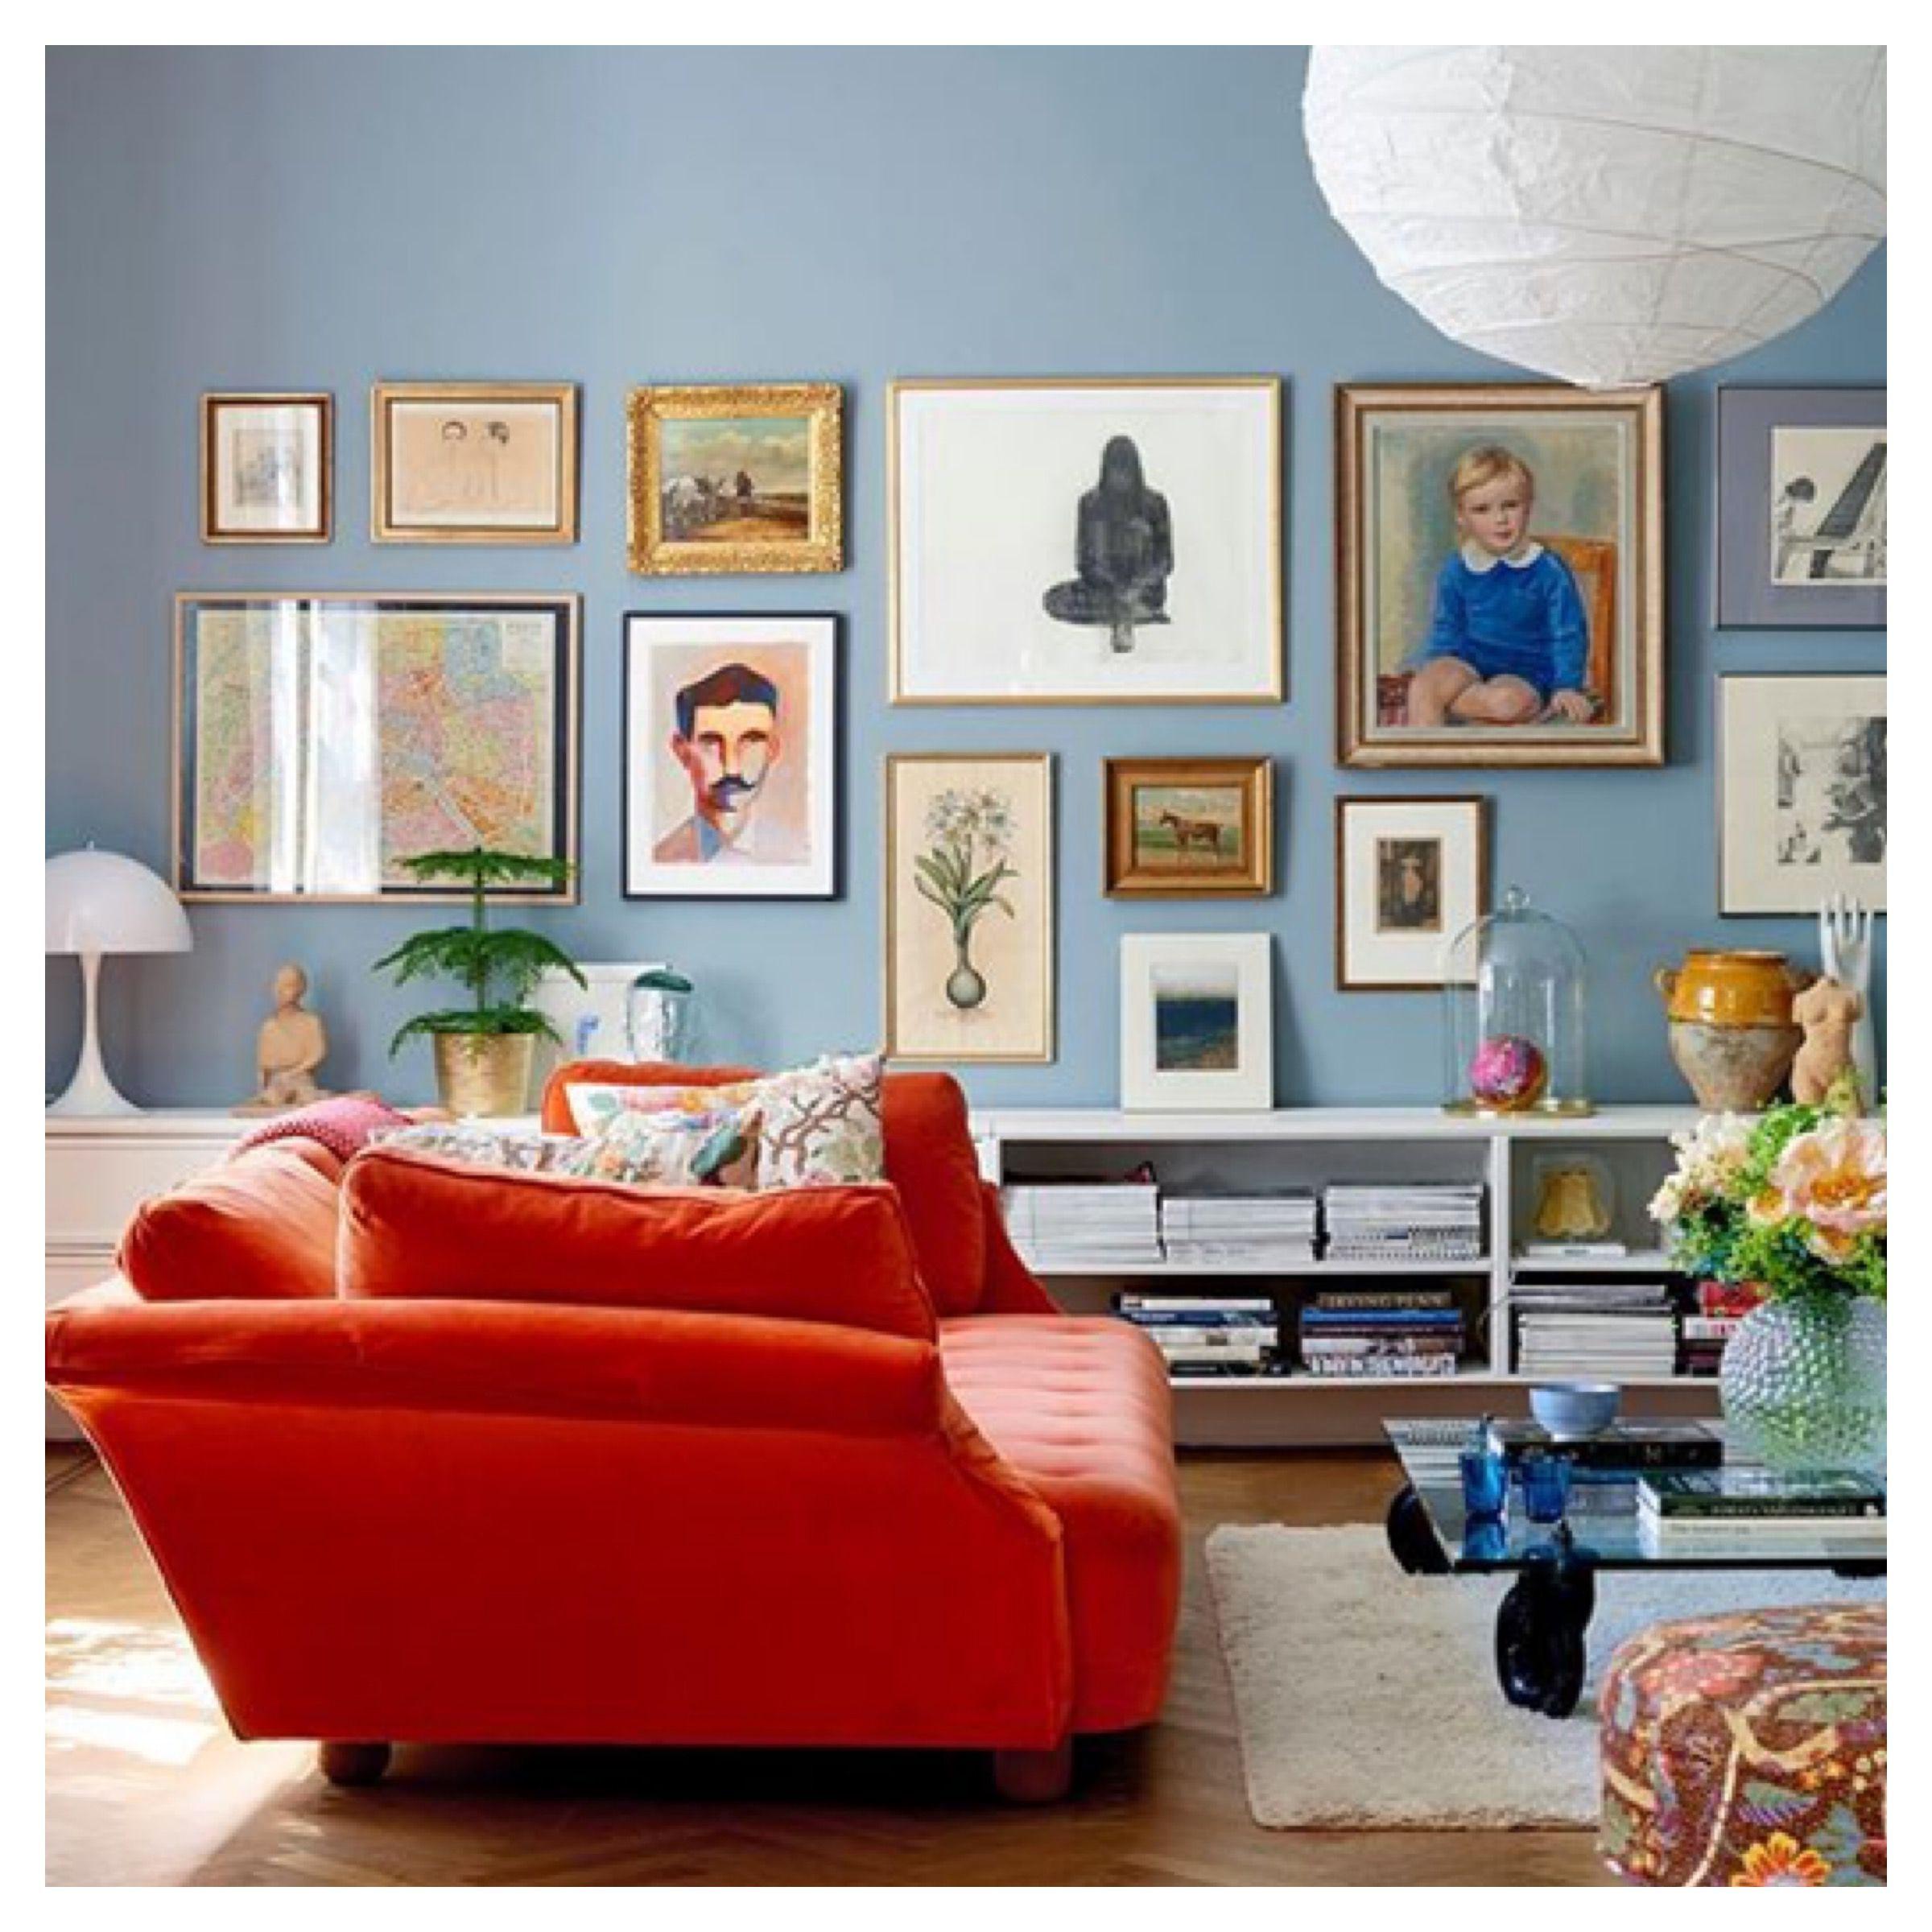 Bright Orange Living Room Accessories: Duck Egg Blue Gallery Wall And Bright Red